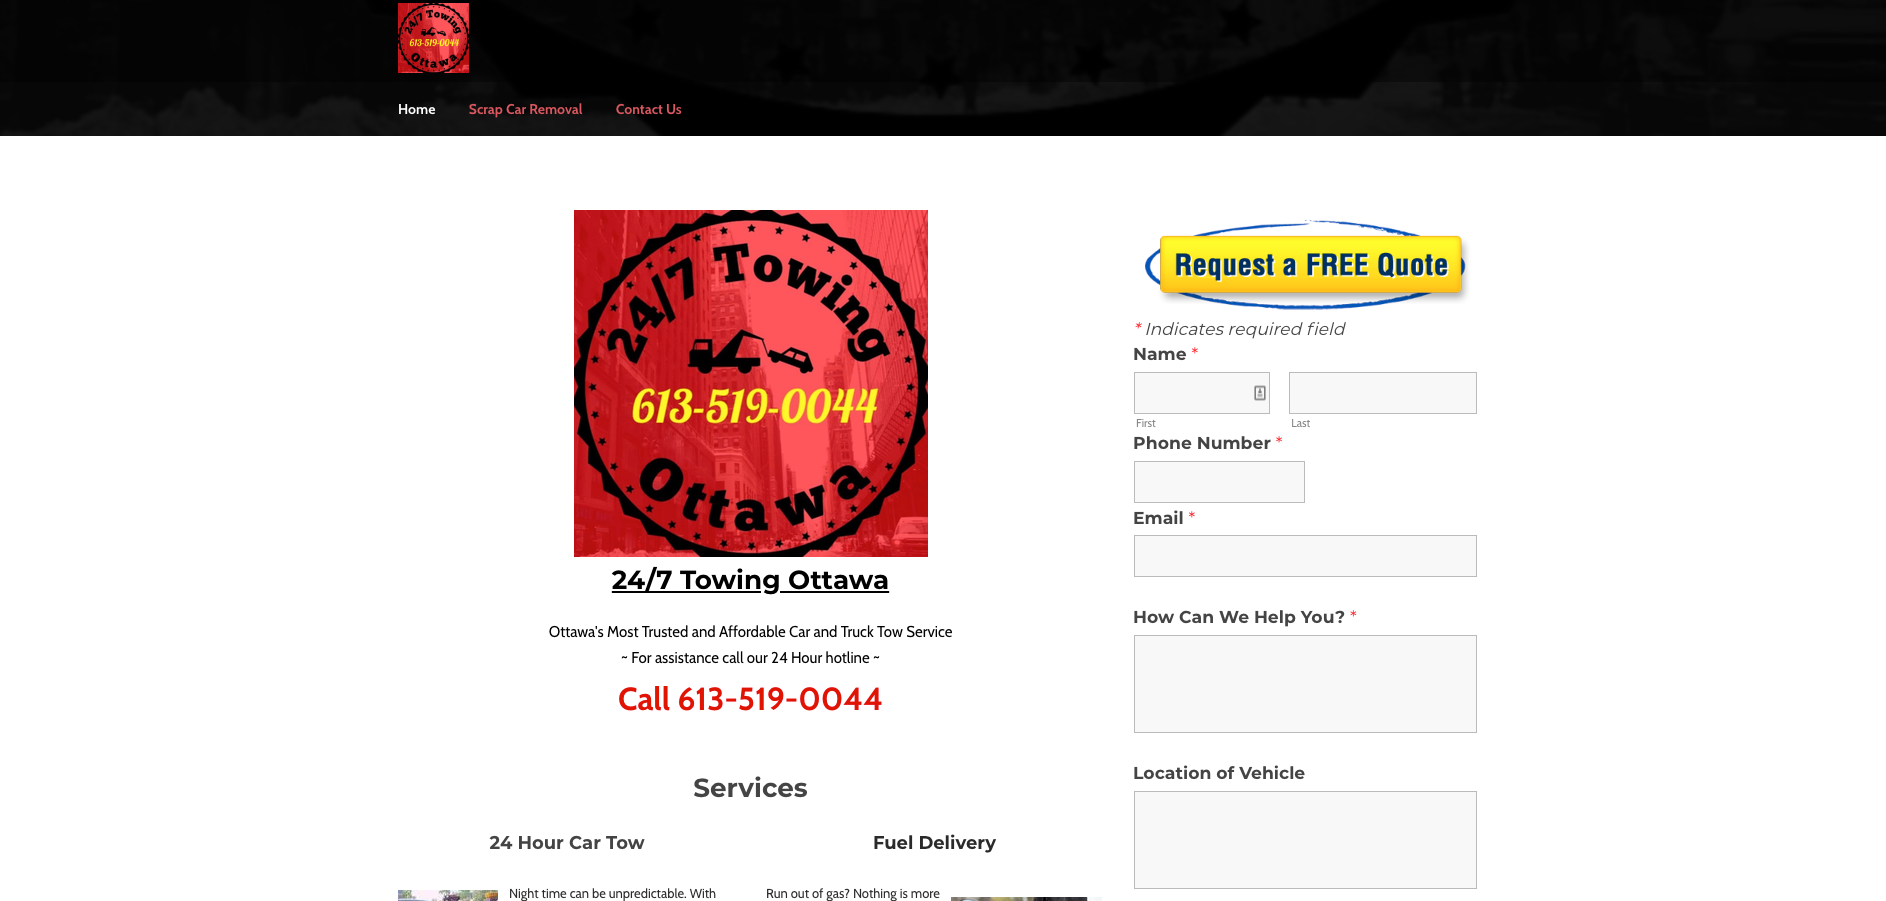 24/7 Towing Ottawa Website in Ottawa